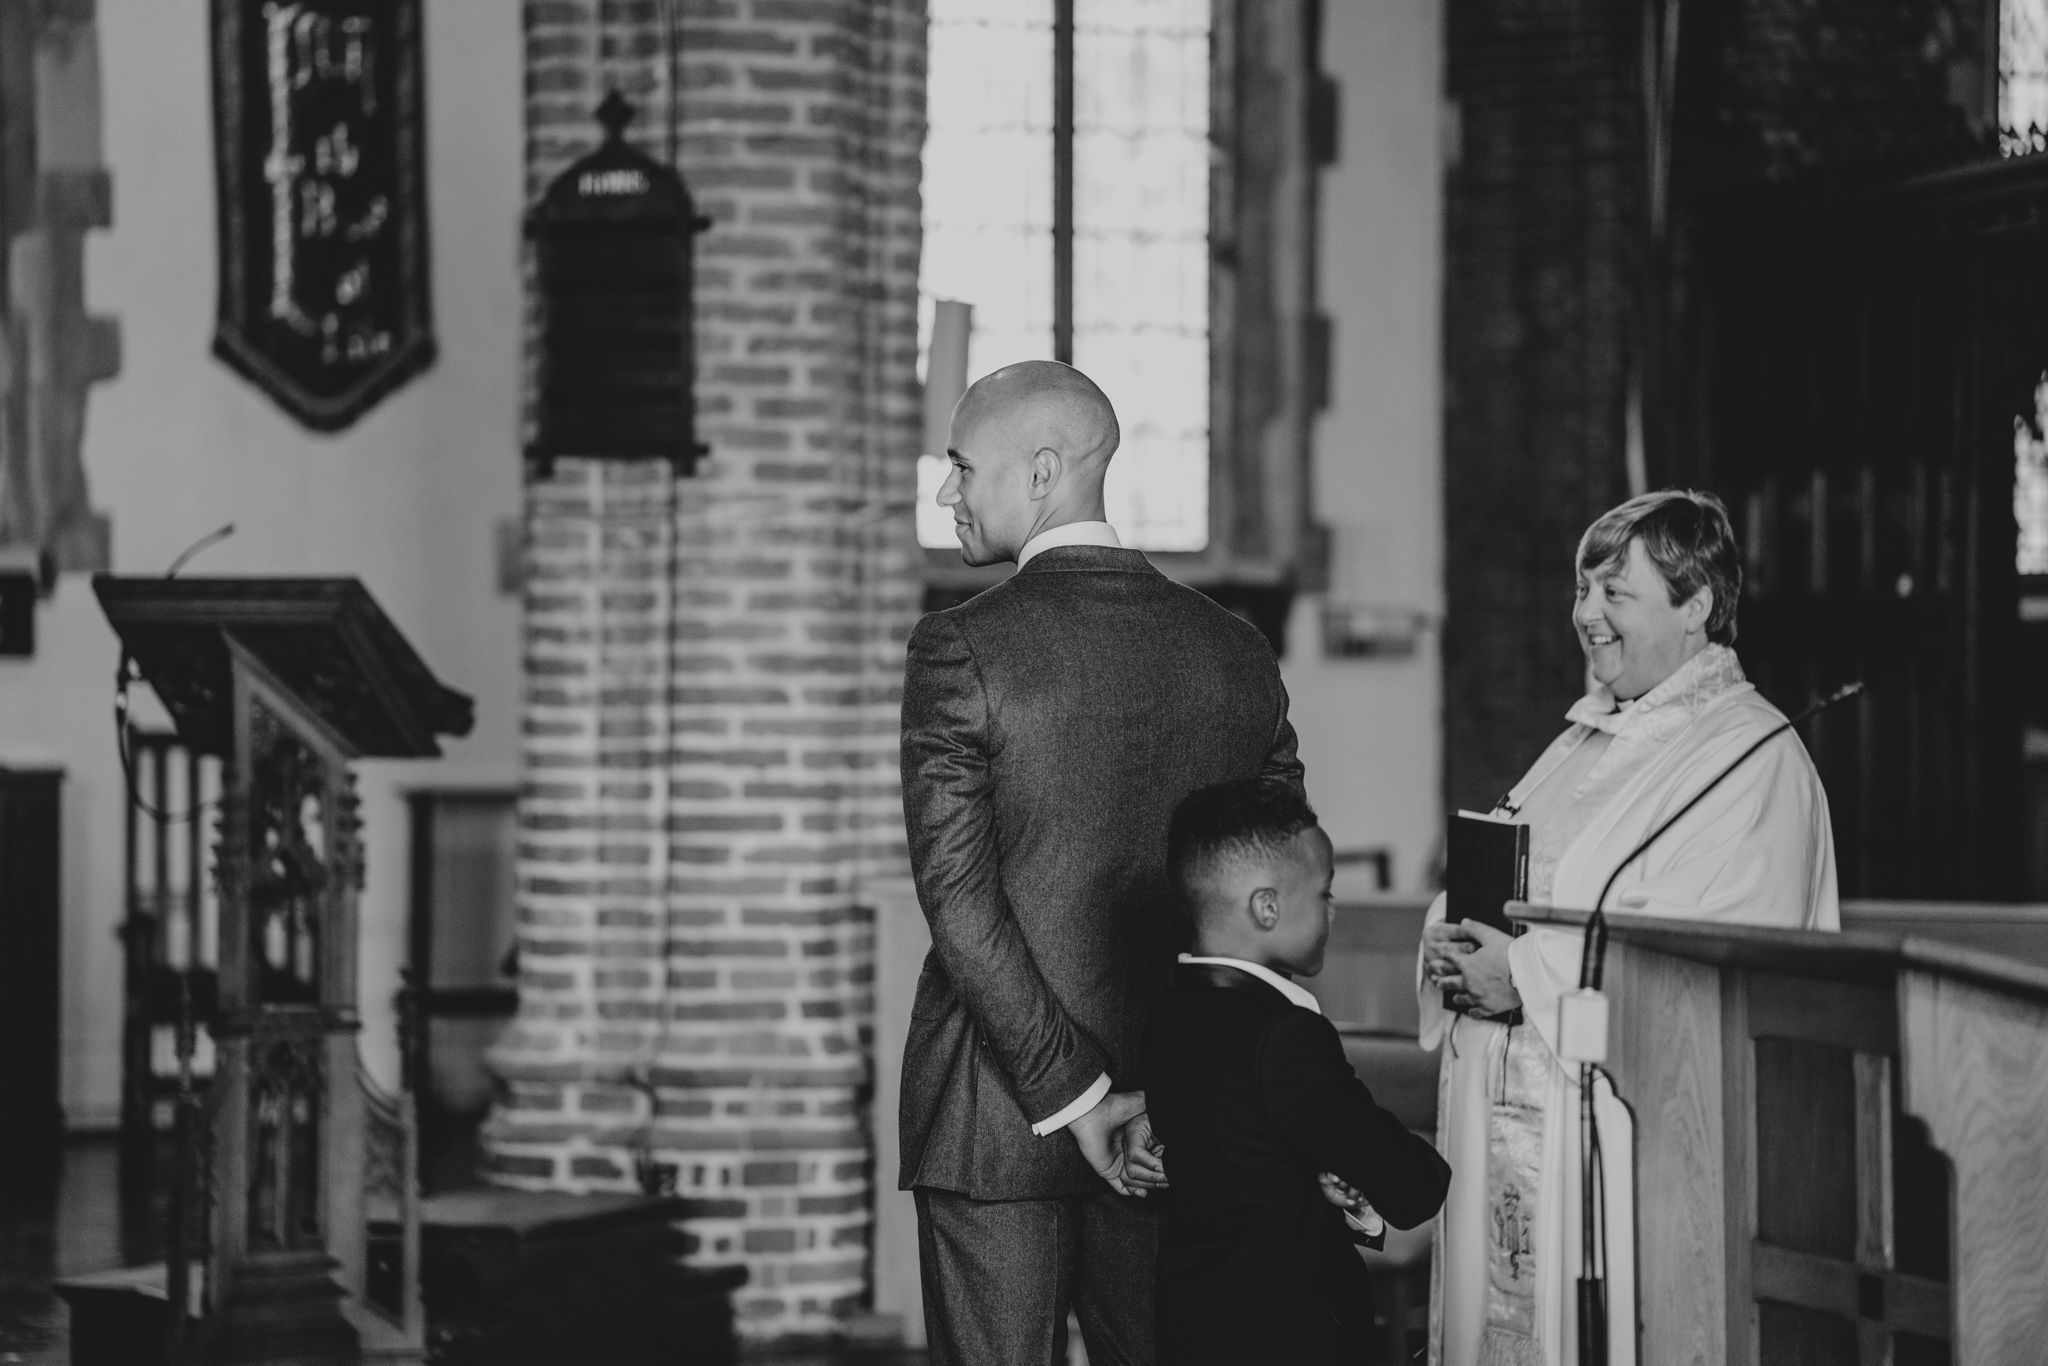 intimate-english-church-wedding-sarah-alex-colchester-essex-grace-elizabeth-colchester-essex-alternative-wedding-lifestyle-photographer-essex-suffolk-norfolk-devon (30 of 92).jpg